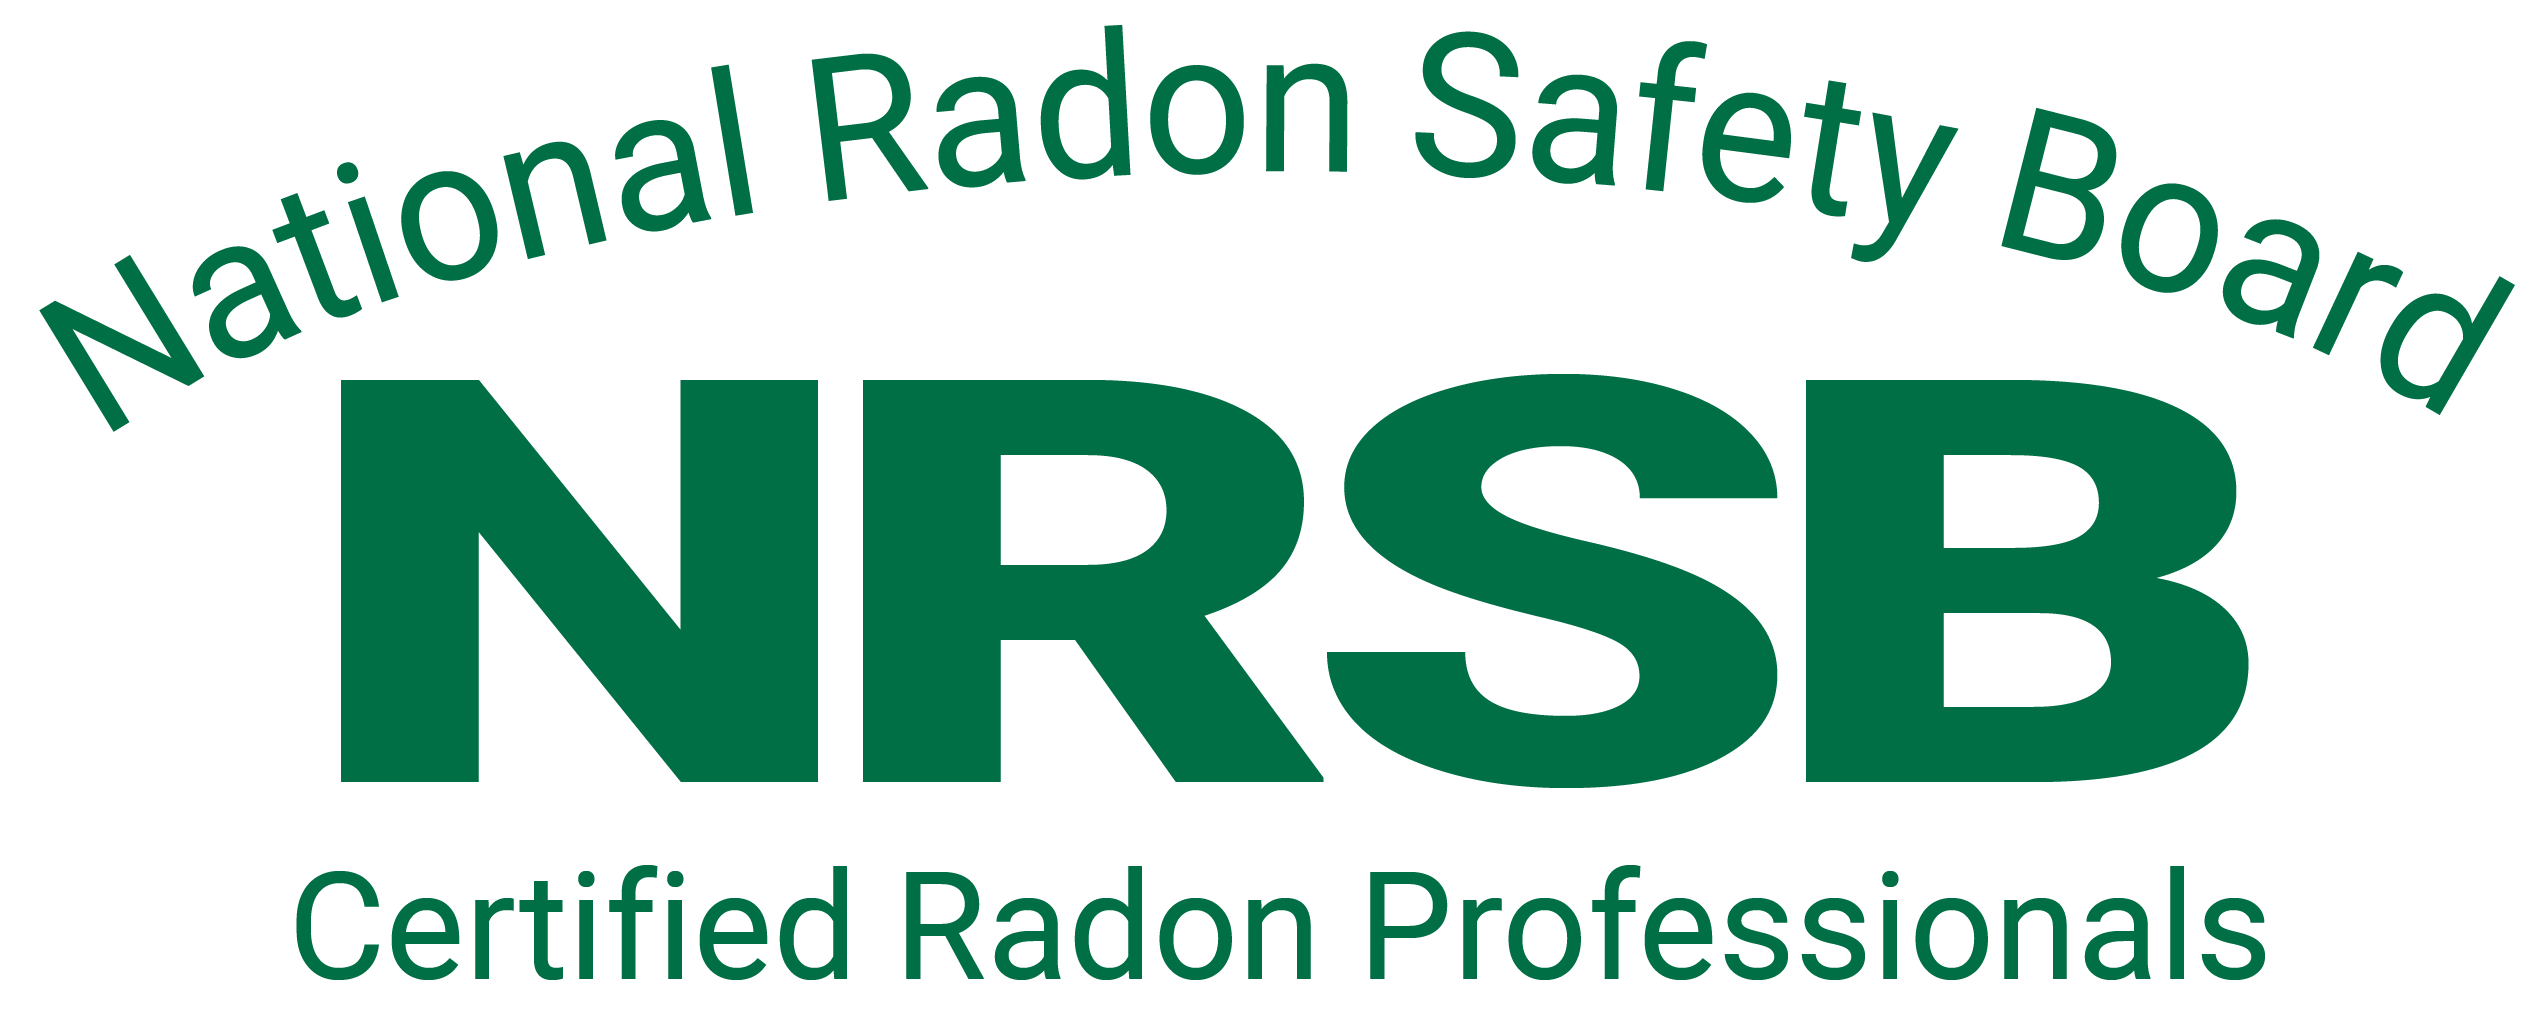 NRSB-green-fill-plain